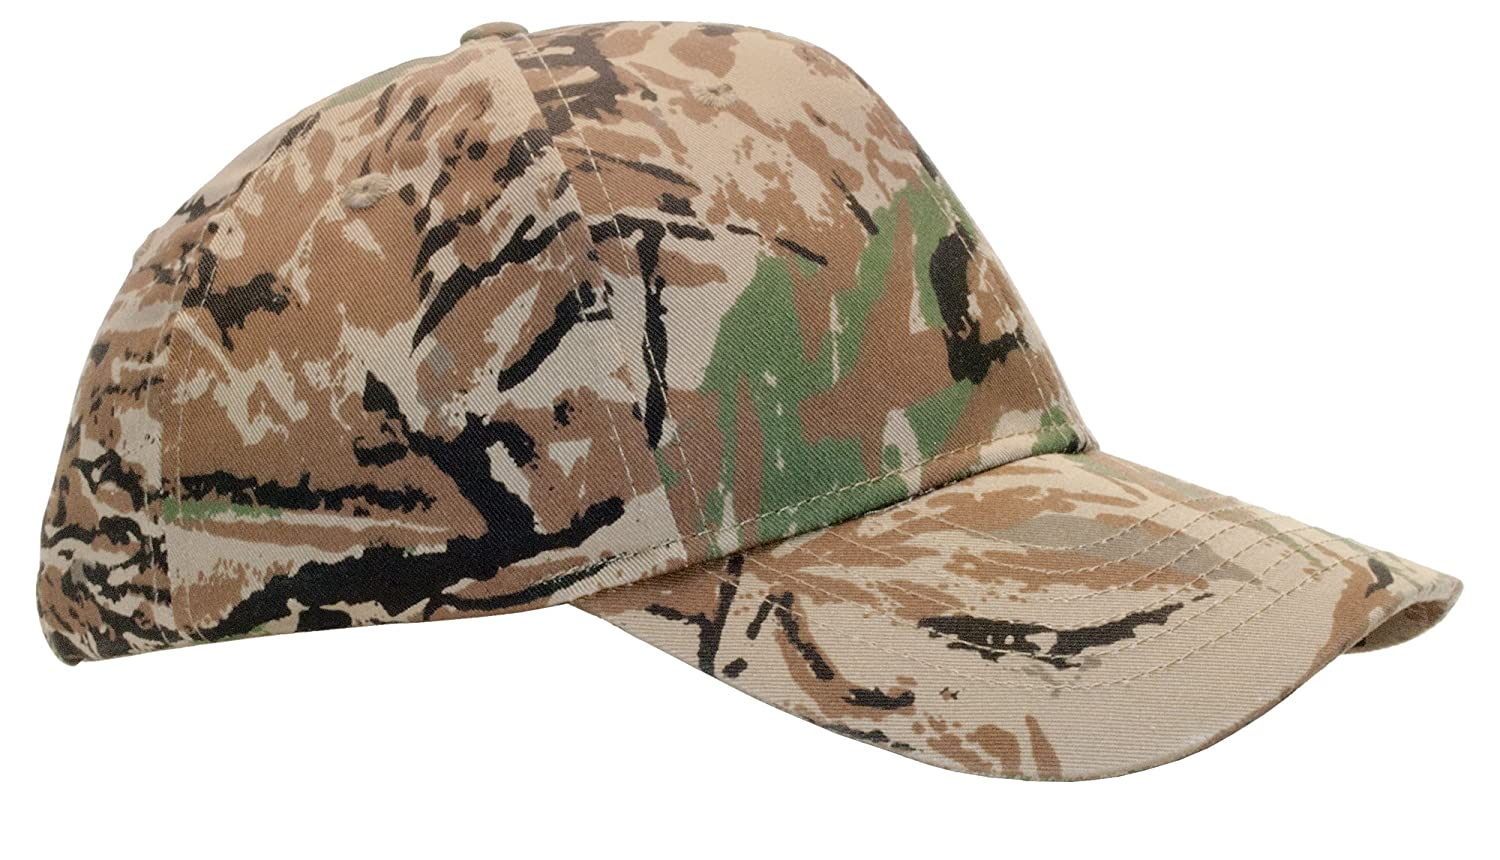 ERB Safety 28840 H64 Ball Cap, One Size, Camouflage Green Standard Plumbing Supply